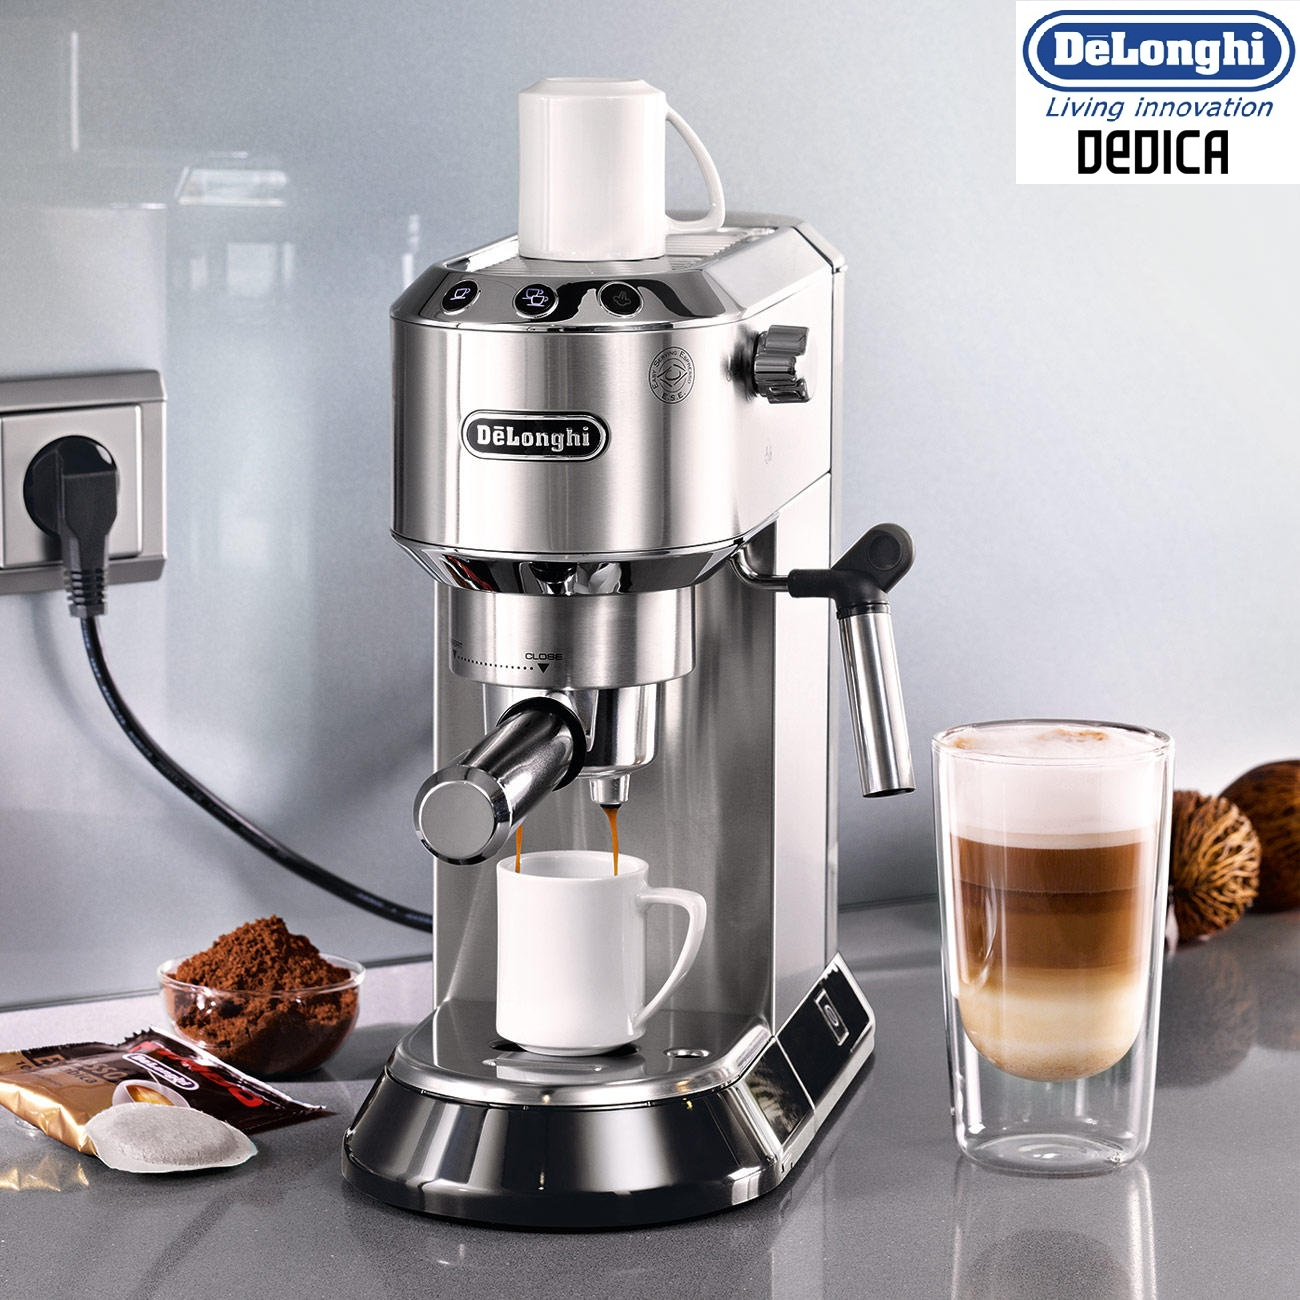 delonghi ec680m dedica espresso and cappuccino 15 bar pump. Black Bedroom Furniture Sets. Home Design Ideas